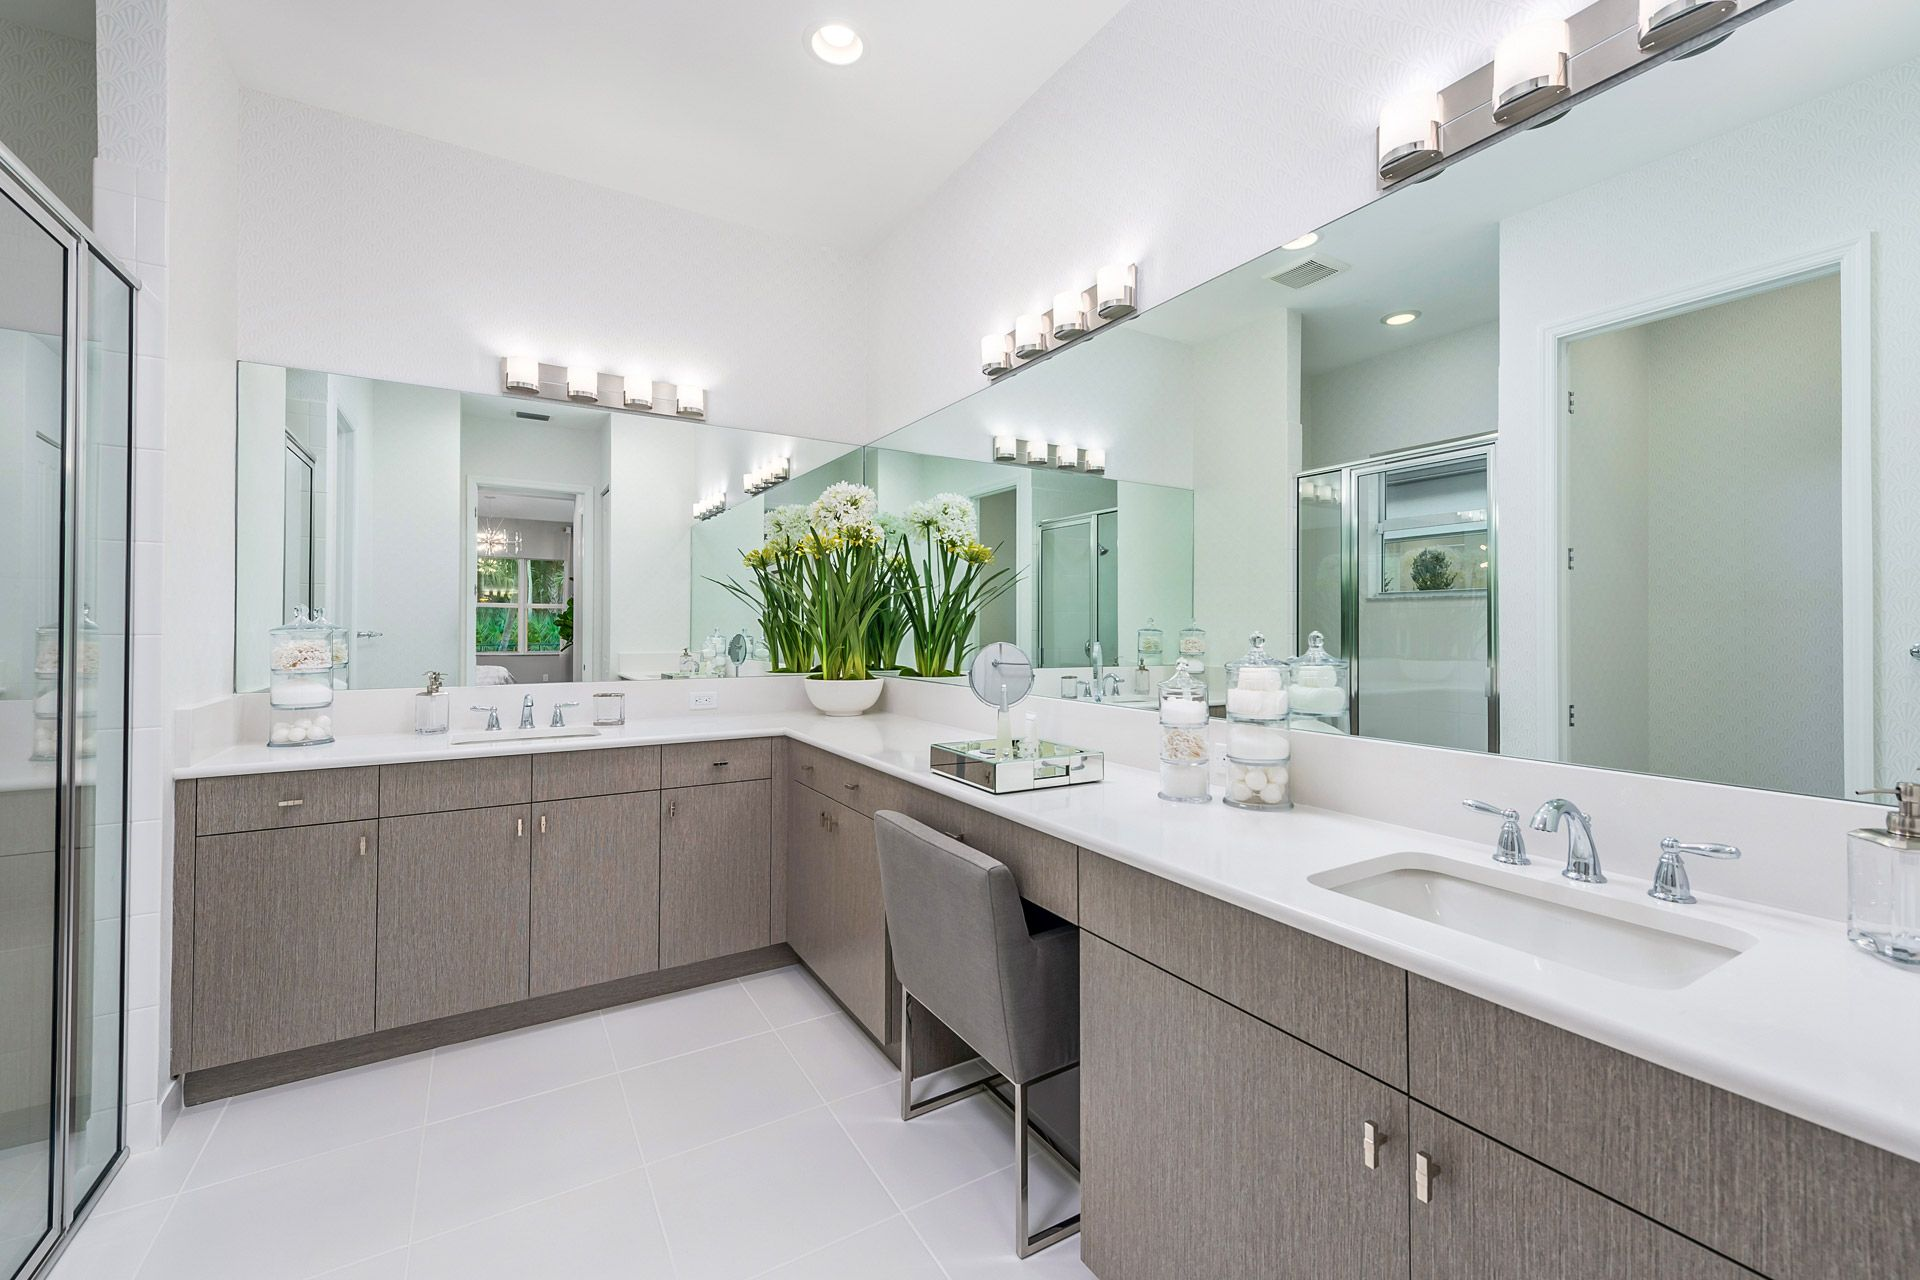 Bathroom featured in the Flamingo By GL Homes in Naples, FL